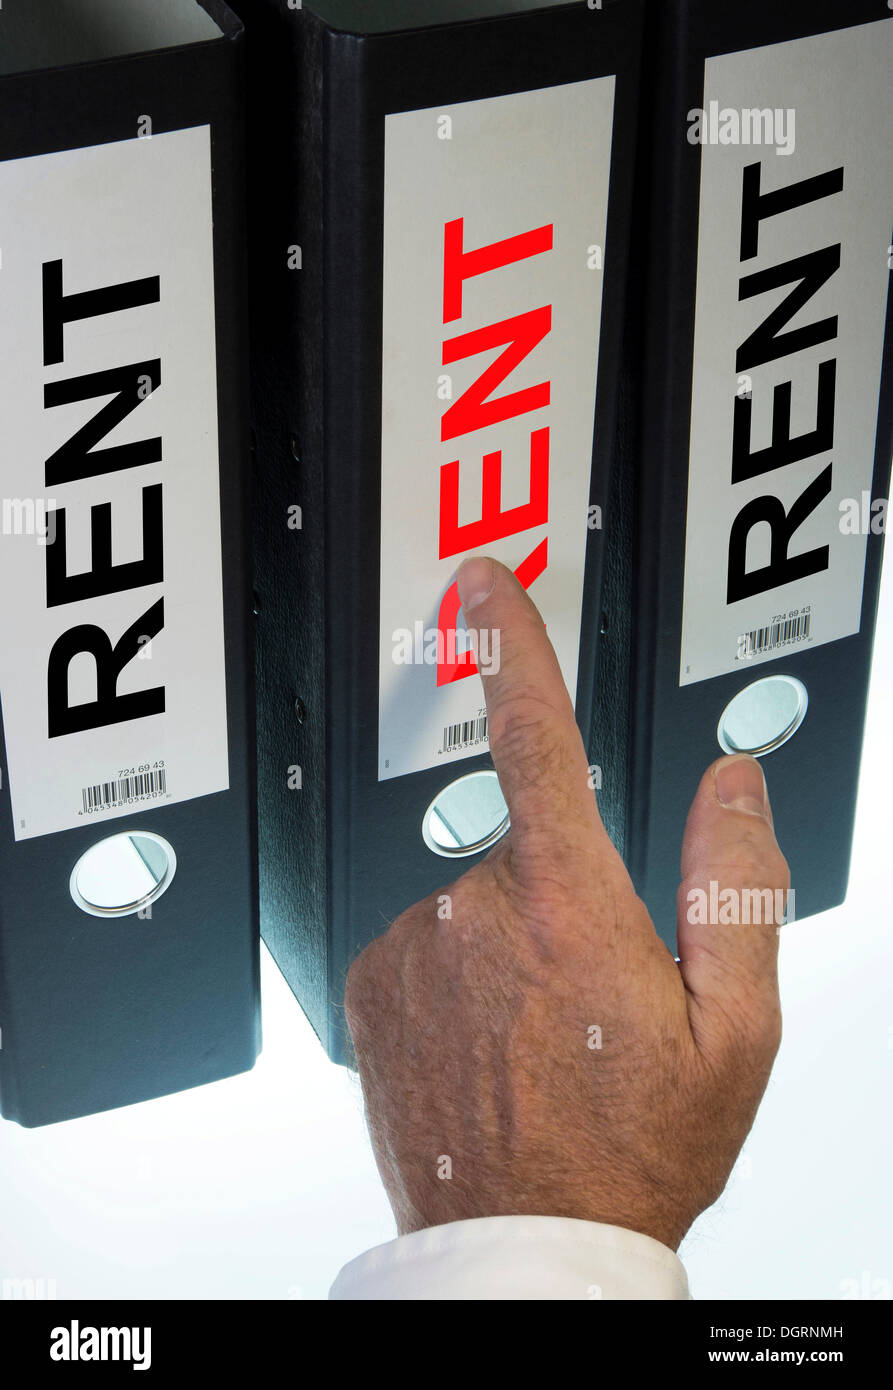 Hand pointing to a file folder labeled 'Rent' - Stock Image